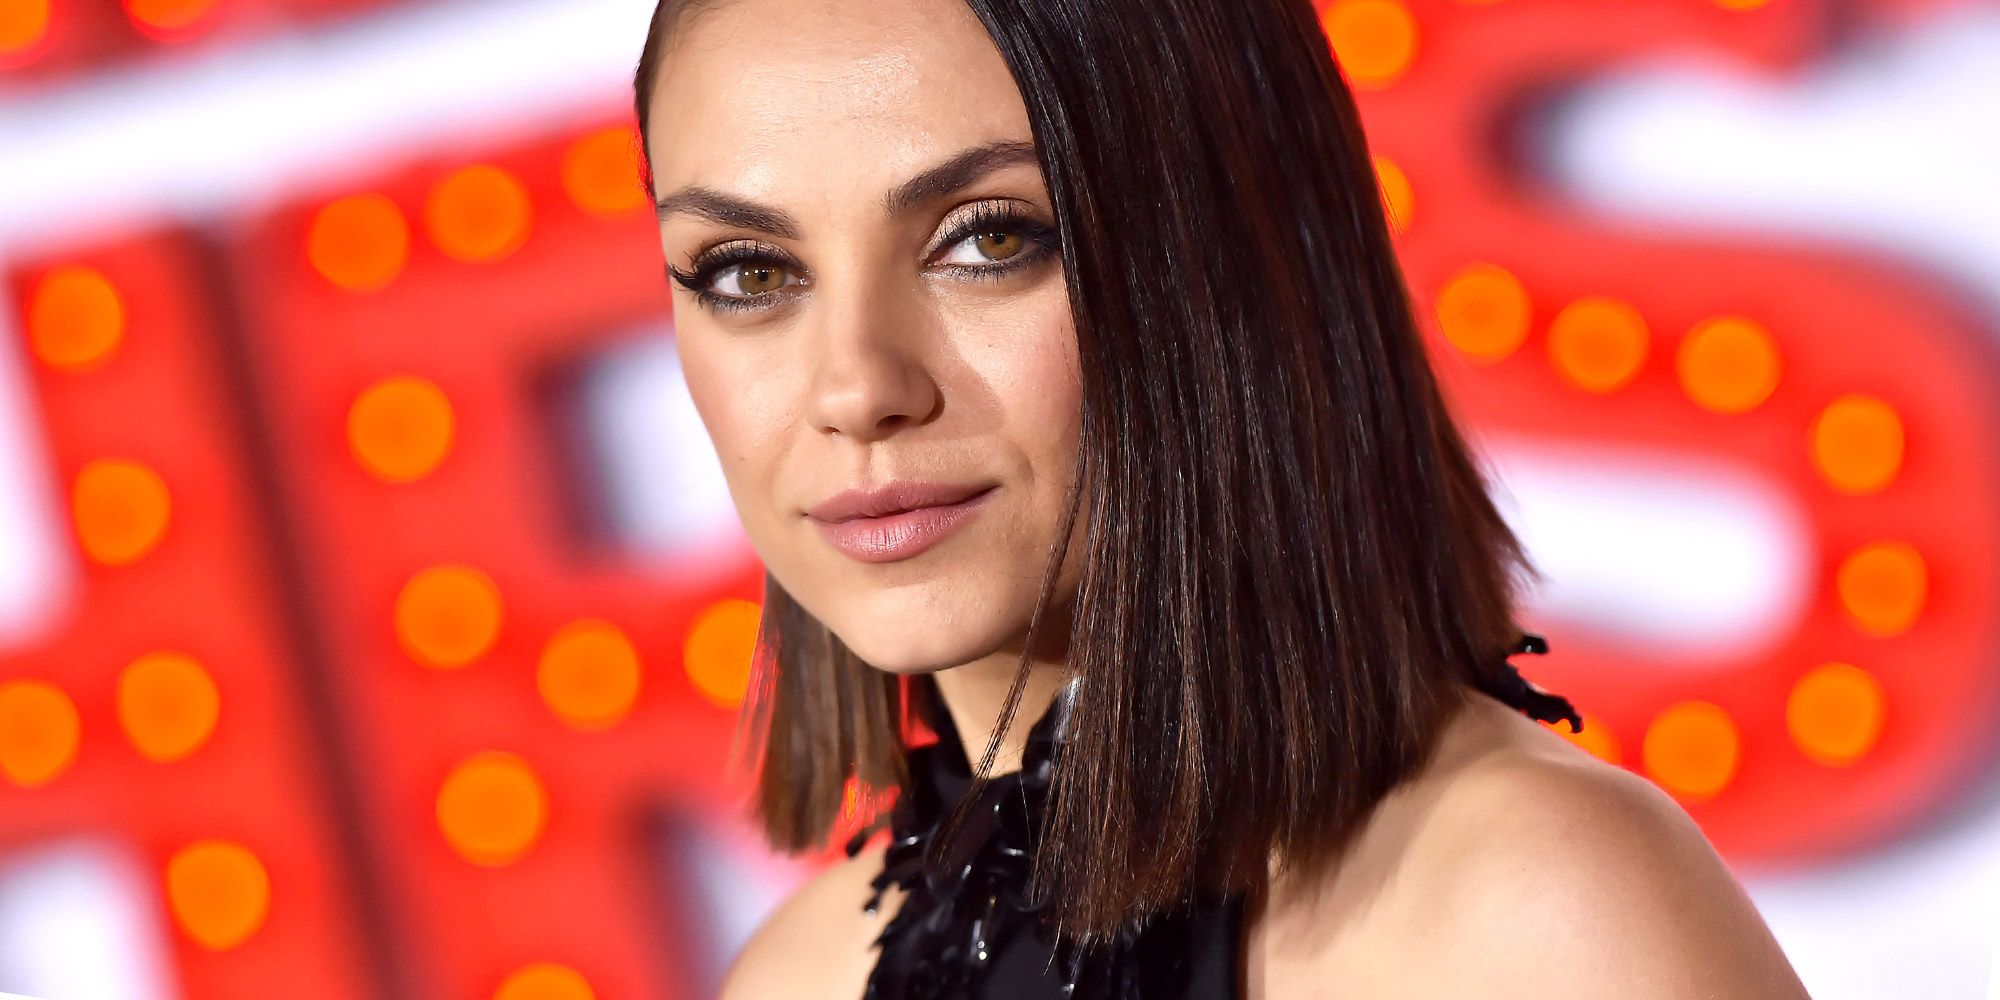 Mila Kunis Cut Her Hair Into An Angled Lob For Spring 2018